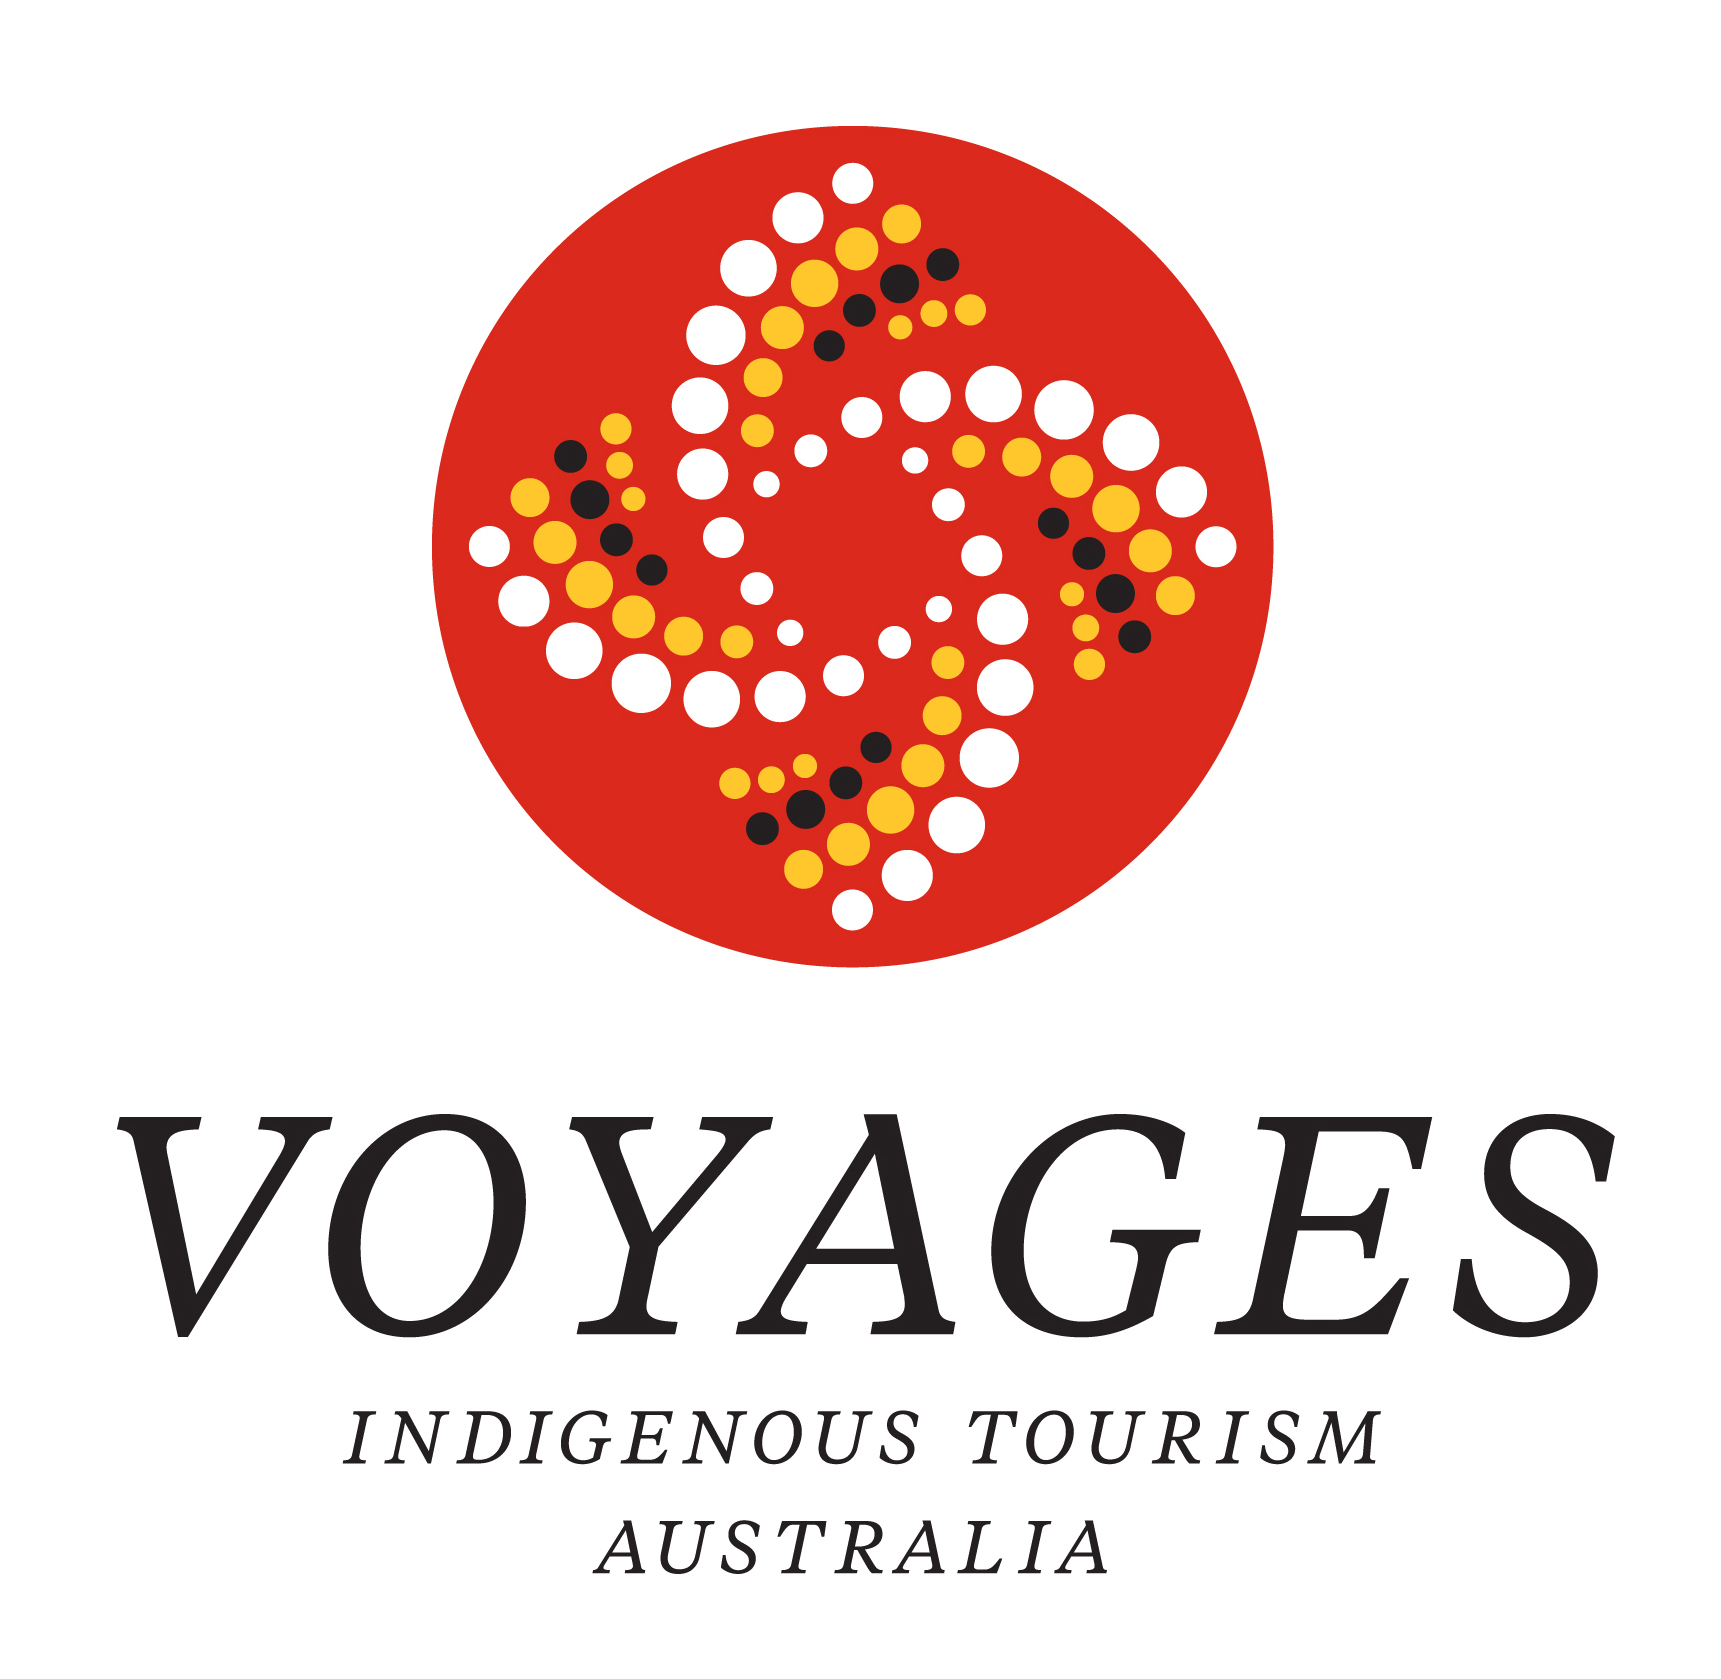 VOYAGES INDIGENOUS TOURISM CREATIVE ACCOUNT TO BMF AND MEDIA TO SPEED AFTER COMPETITIVE PITCH